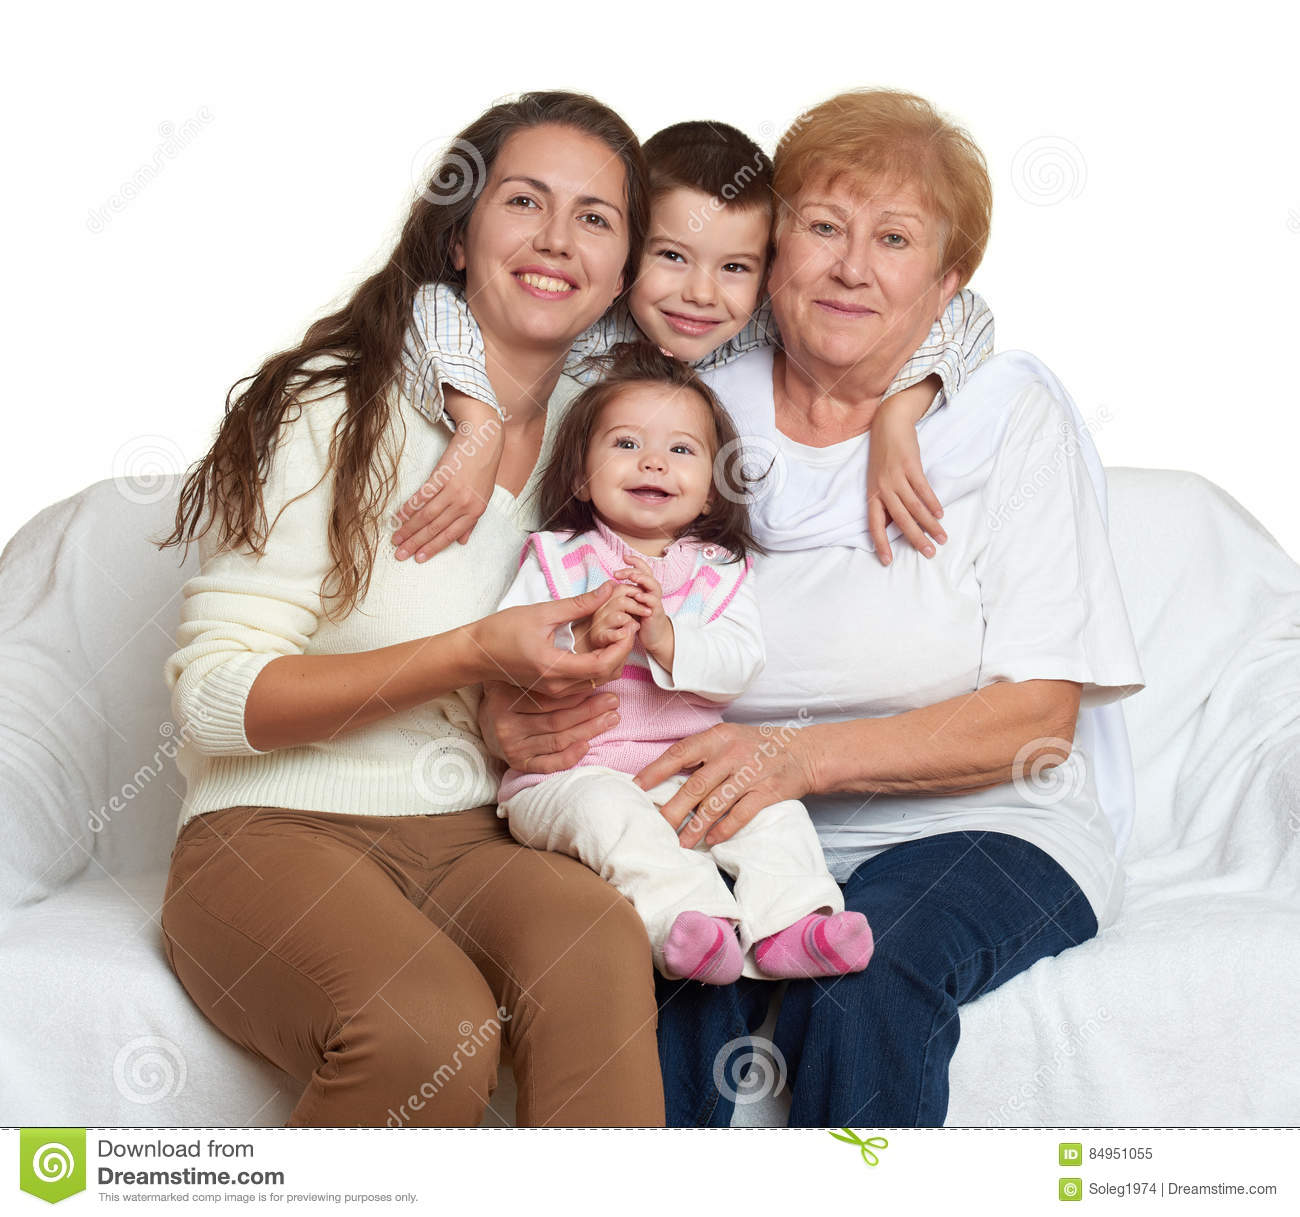 Family portrait on white background happy people sit on sofa children with mother and